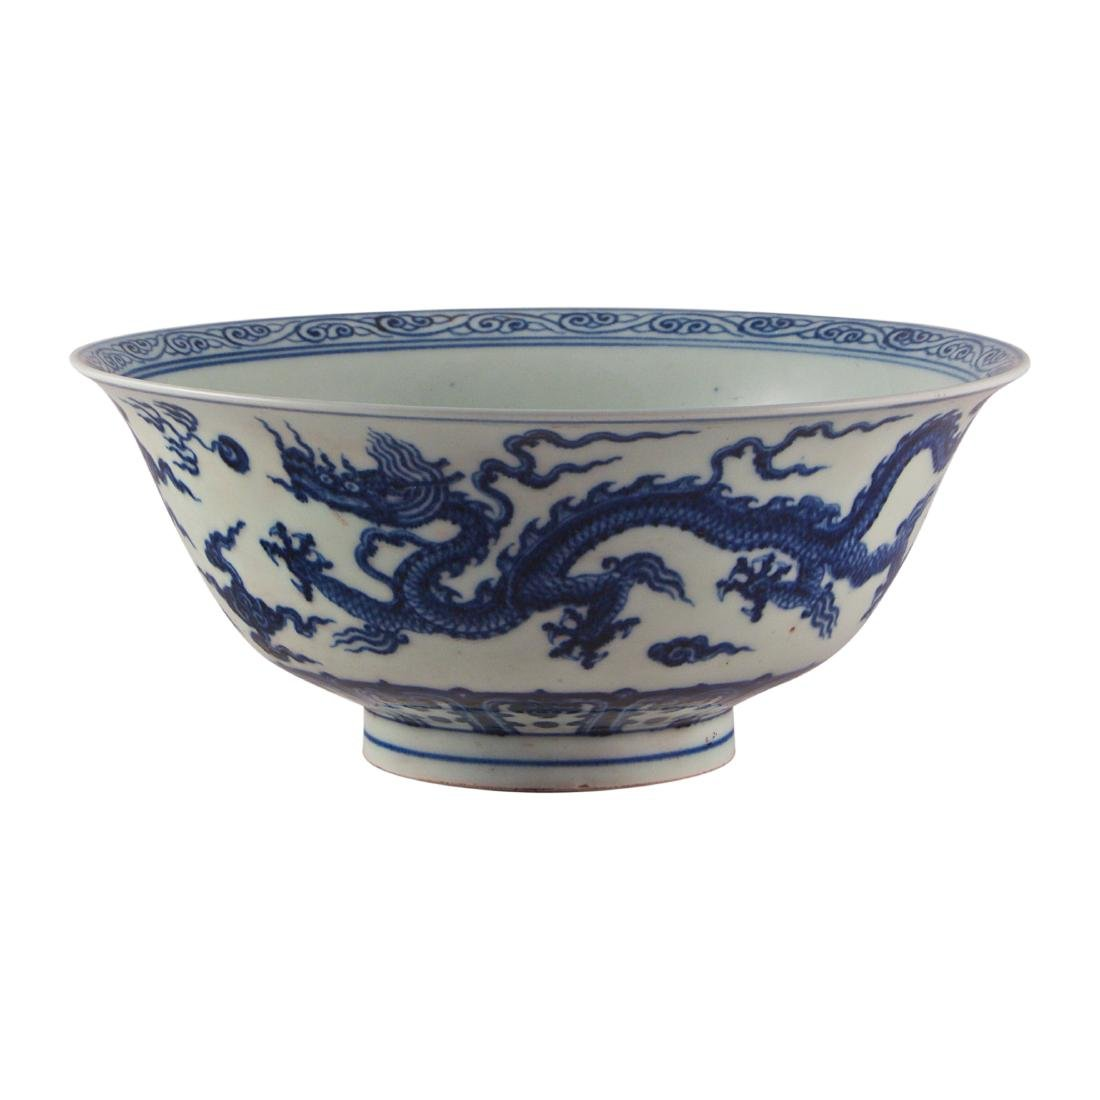 A Chinese Blue and White Dragon Bowl